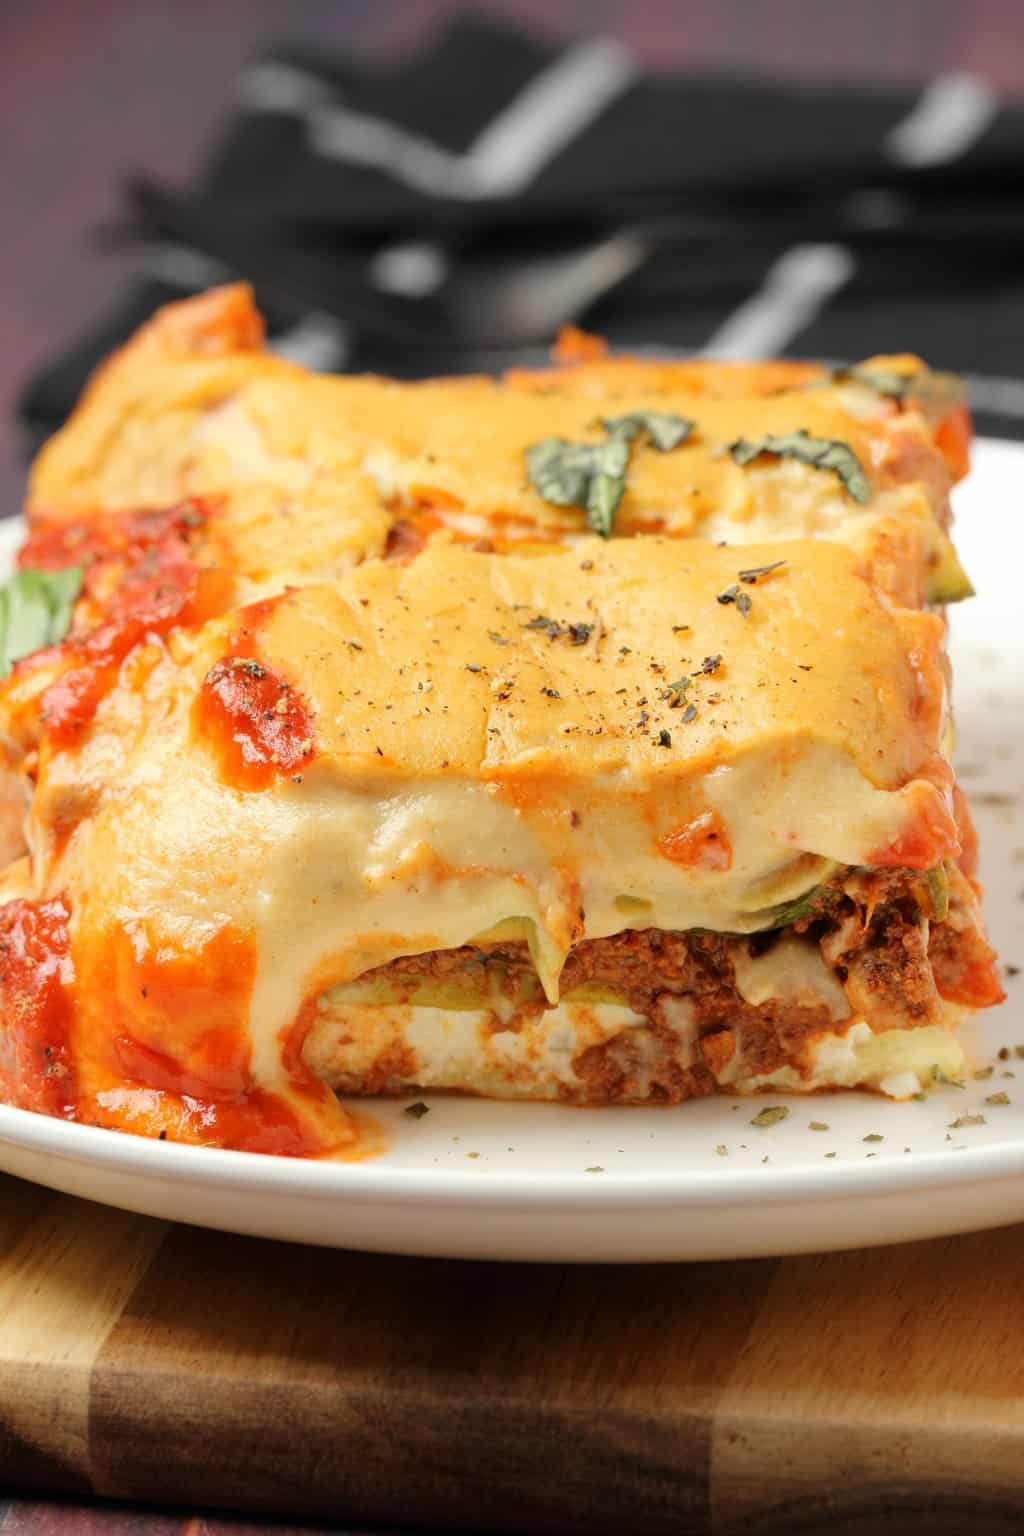 THE BEST VEGAN LASAGNA RECIPE